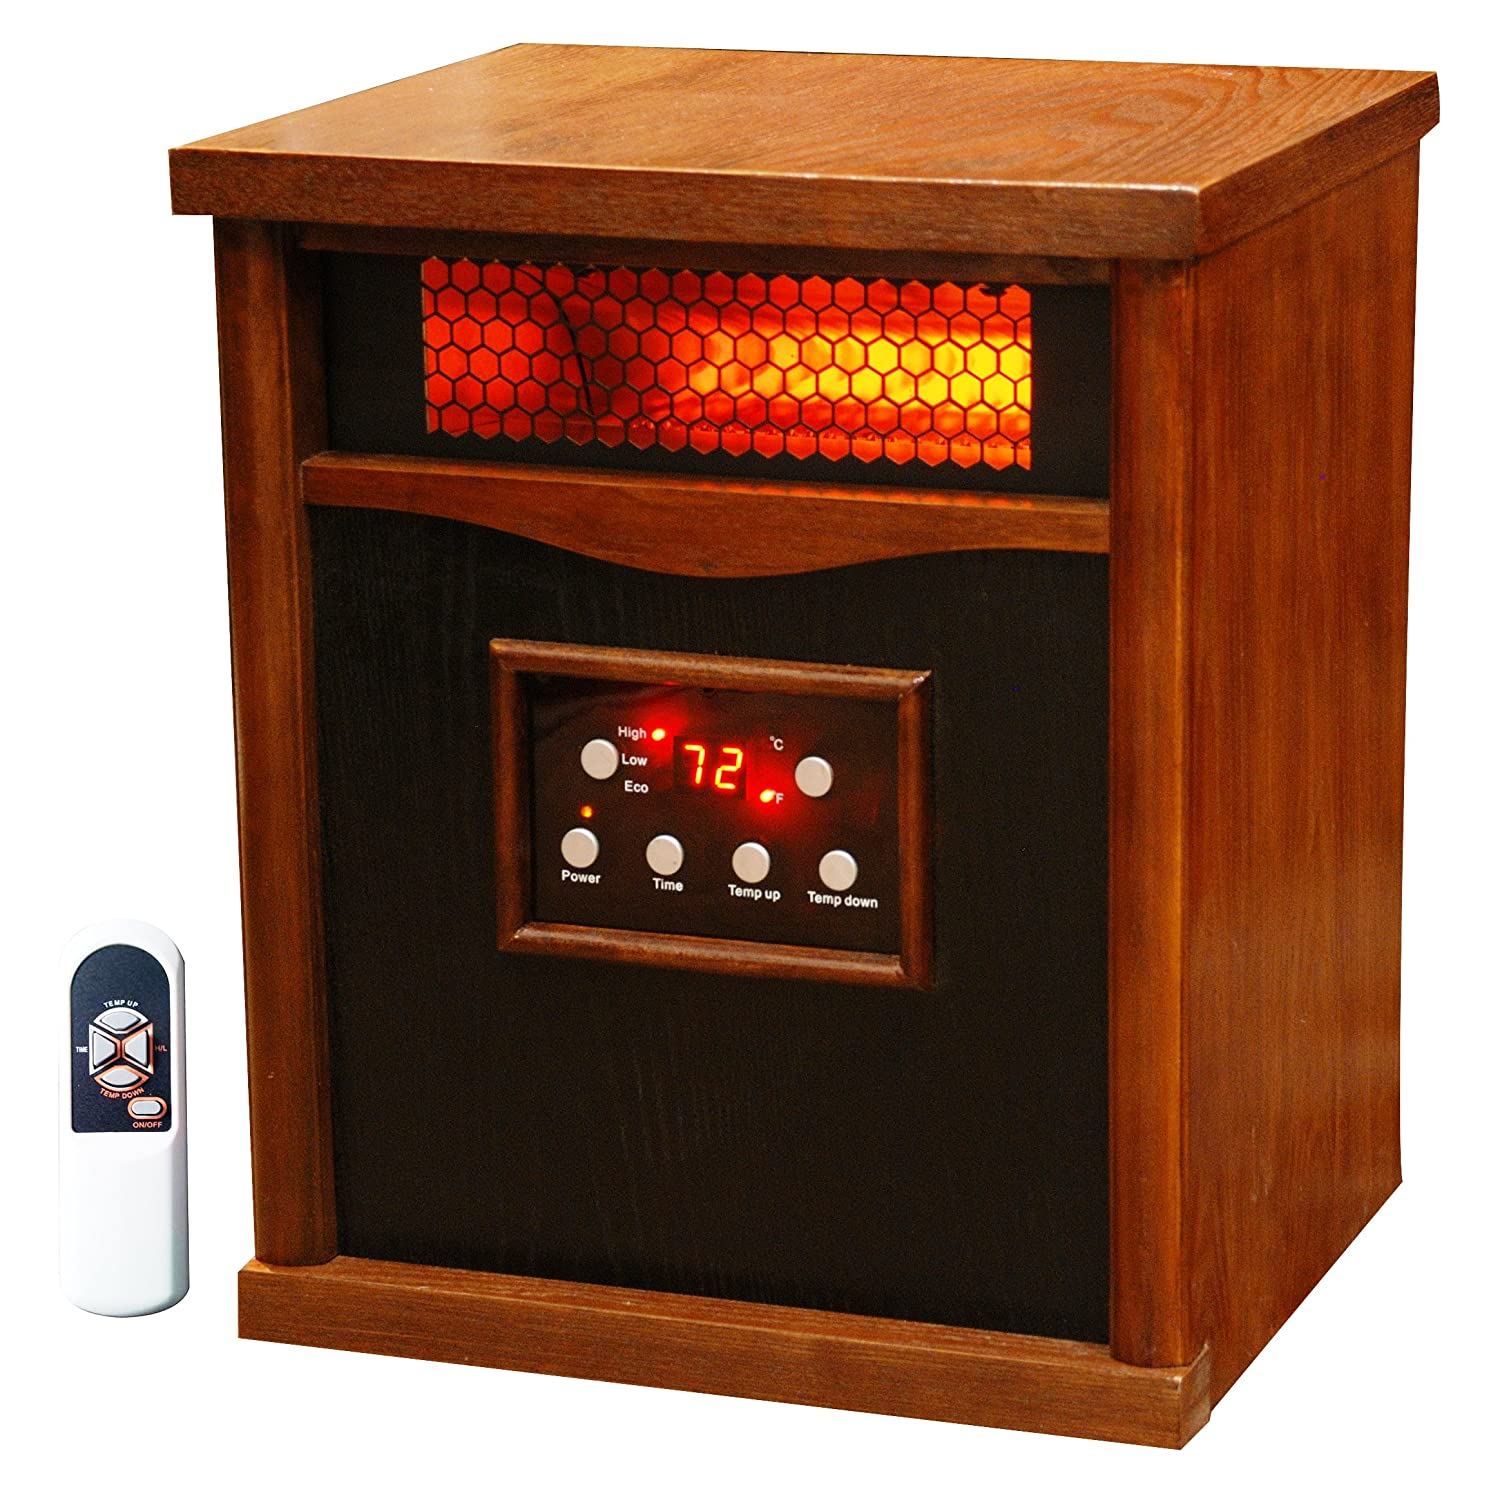 6 Element Large Room Infrared Quartz Heater w/Wood Cabinet